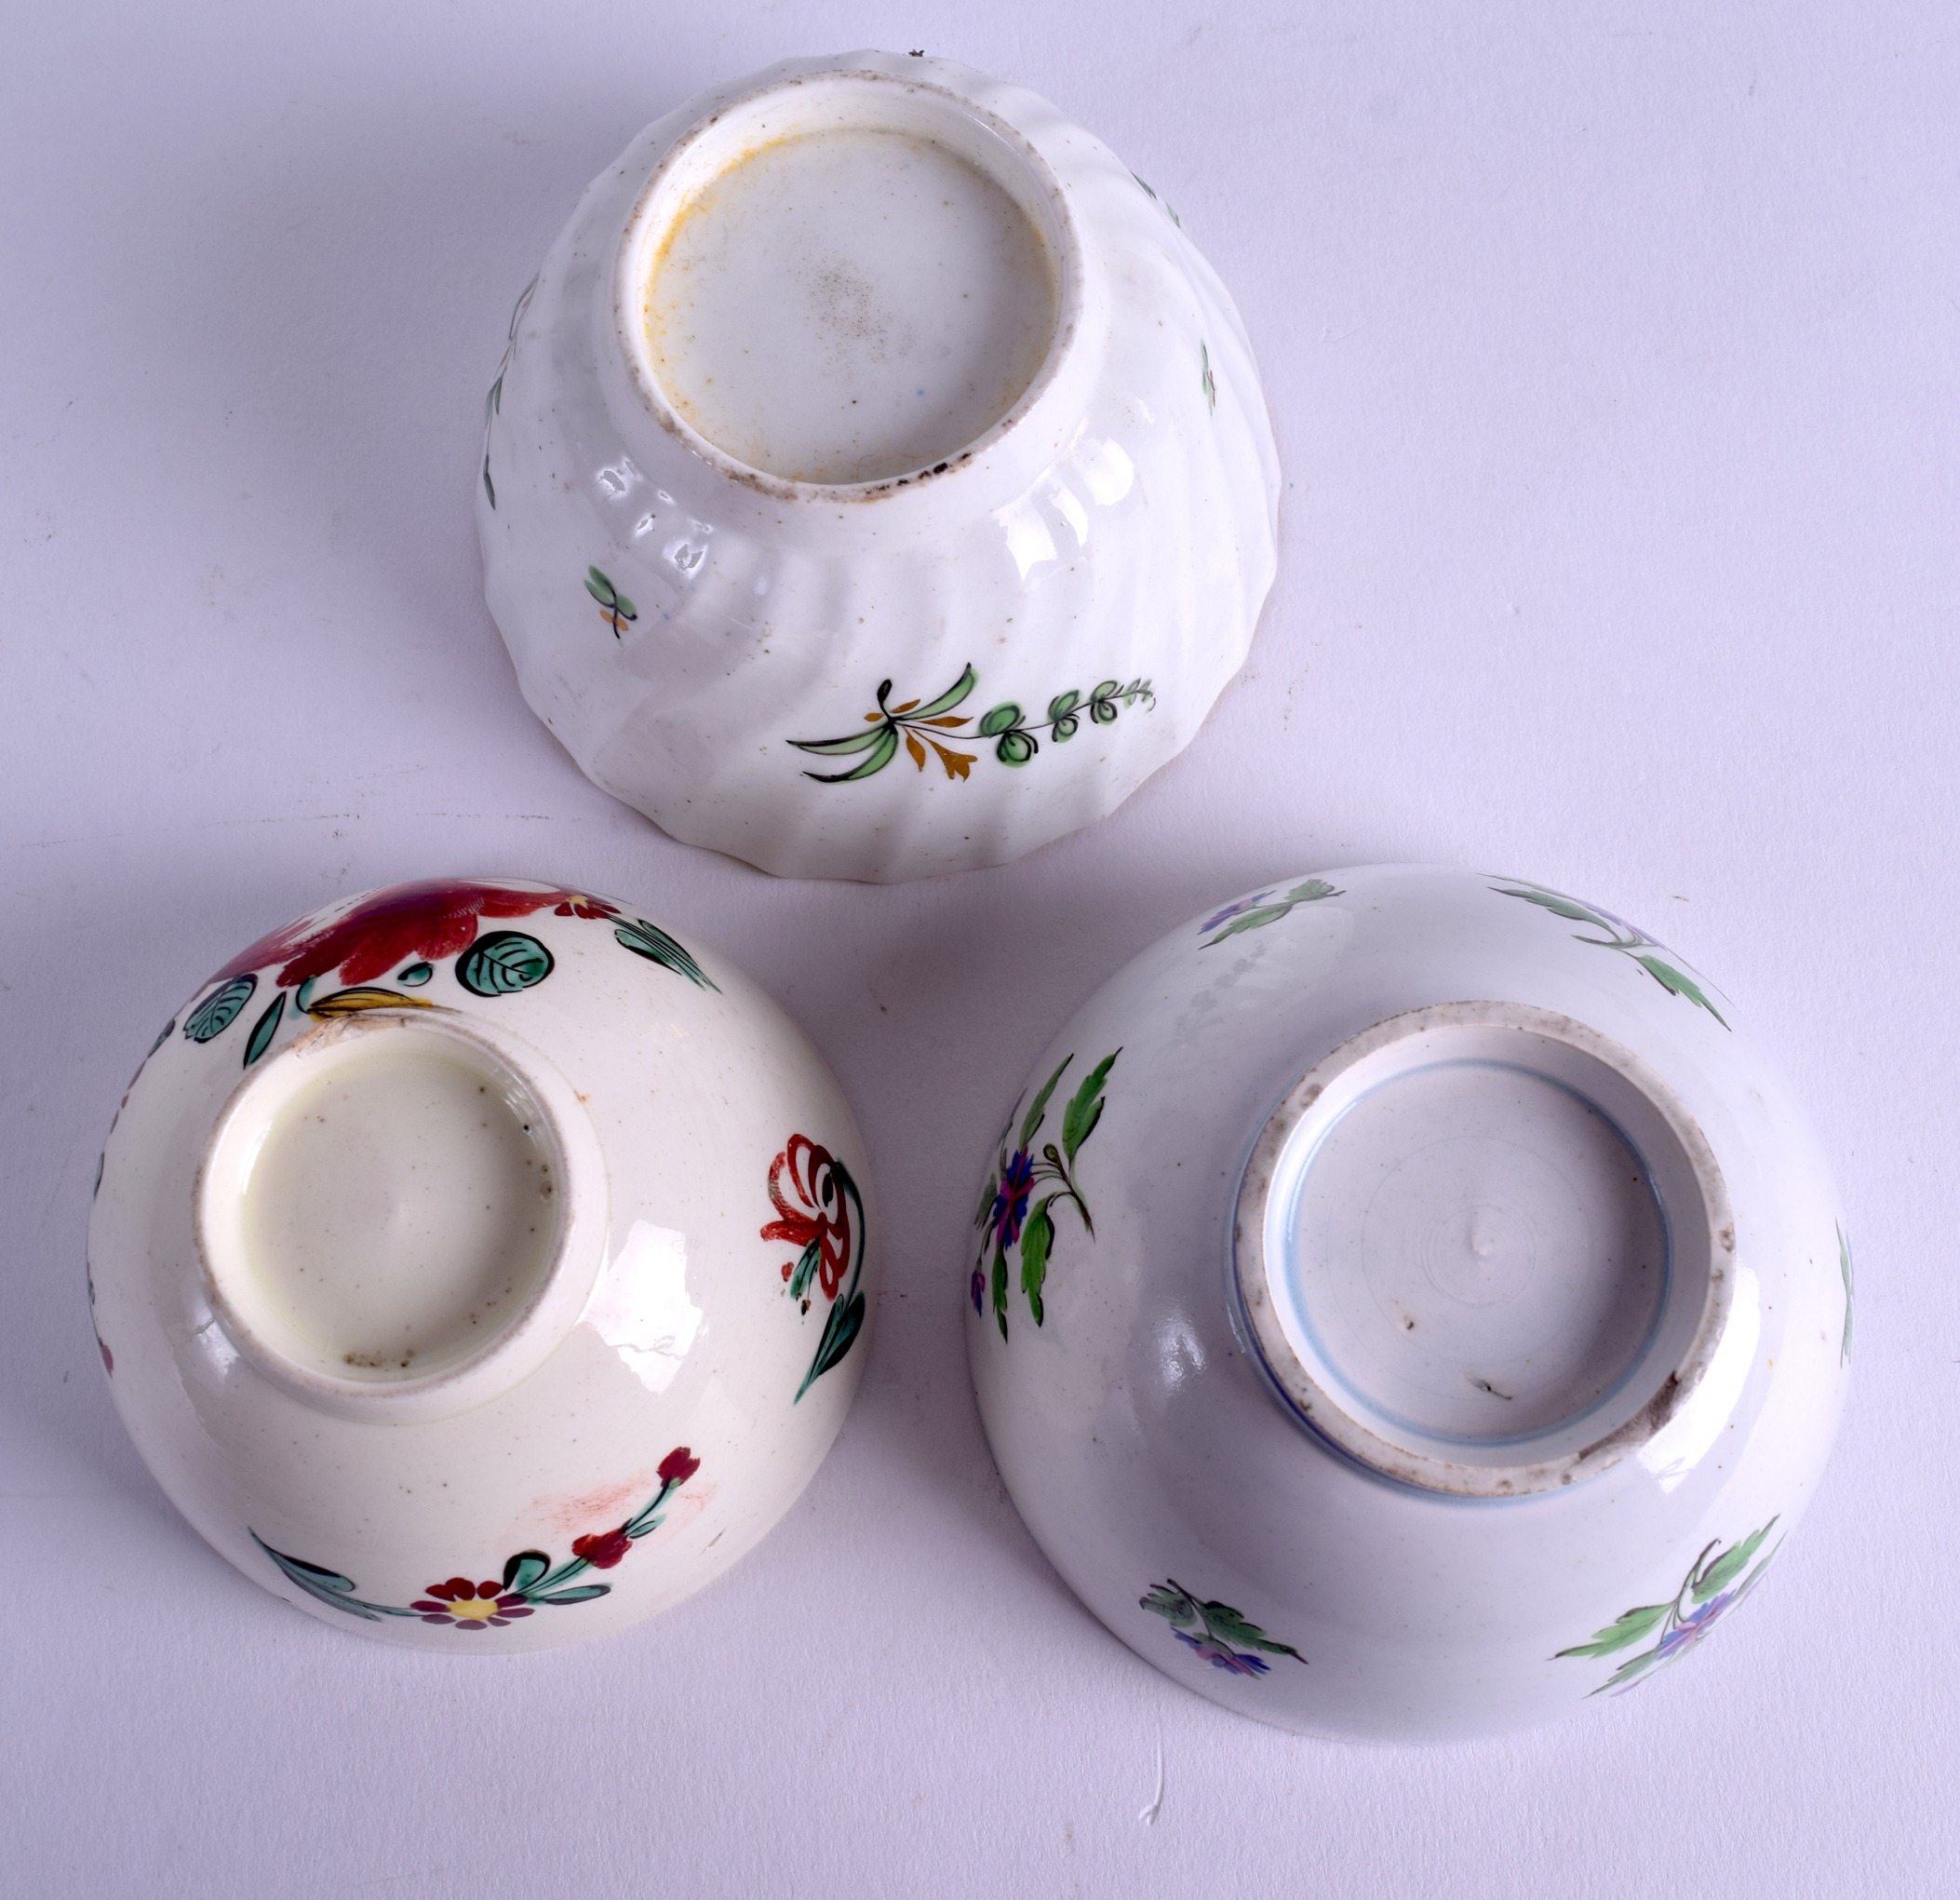 Lot 87 - A LATE 18TH CENTURY LEEDS CREAMWARE TEABOWL painted with flowers, together with two other similar